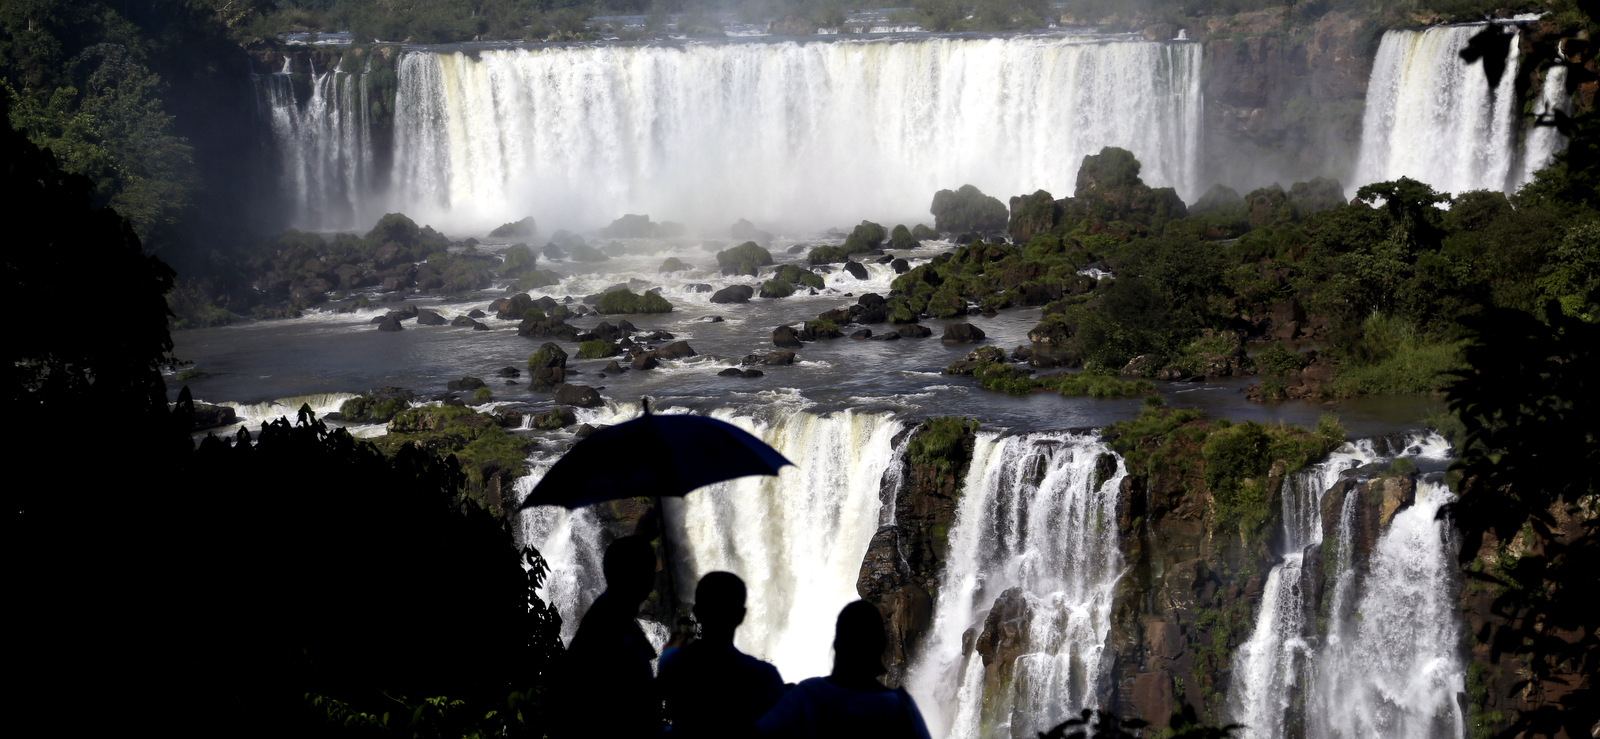 Tourists visit Iguazu Falls in Brazil. The falls are part of the world's largest reservoir of fresh water, known as the Guarani Aquifer. They are in the middle of thick jungle that has more than 1,000 plant and hundreds of animal species., March 15, 2015.(AP/Jorge Saenz)